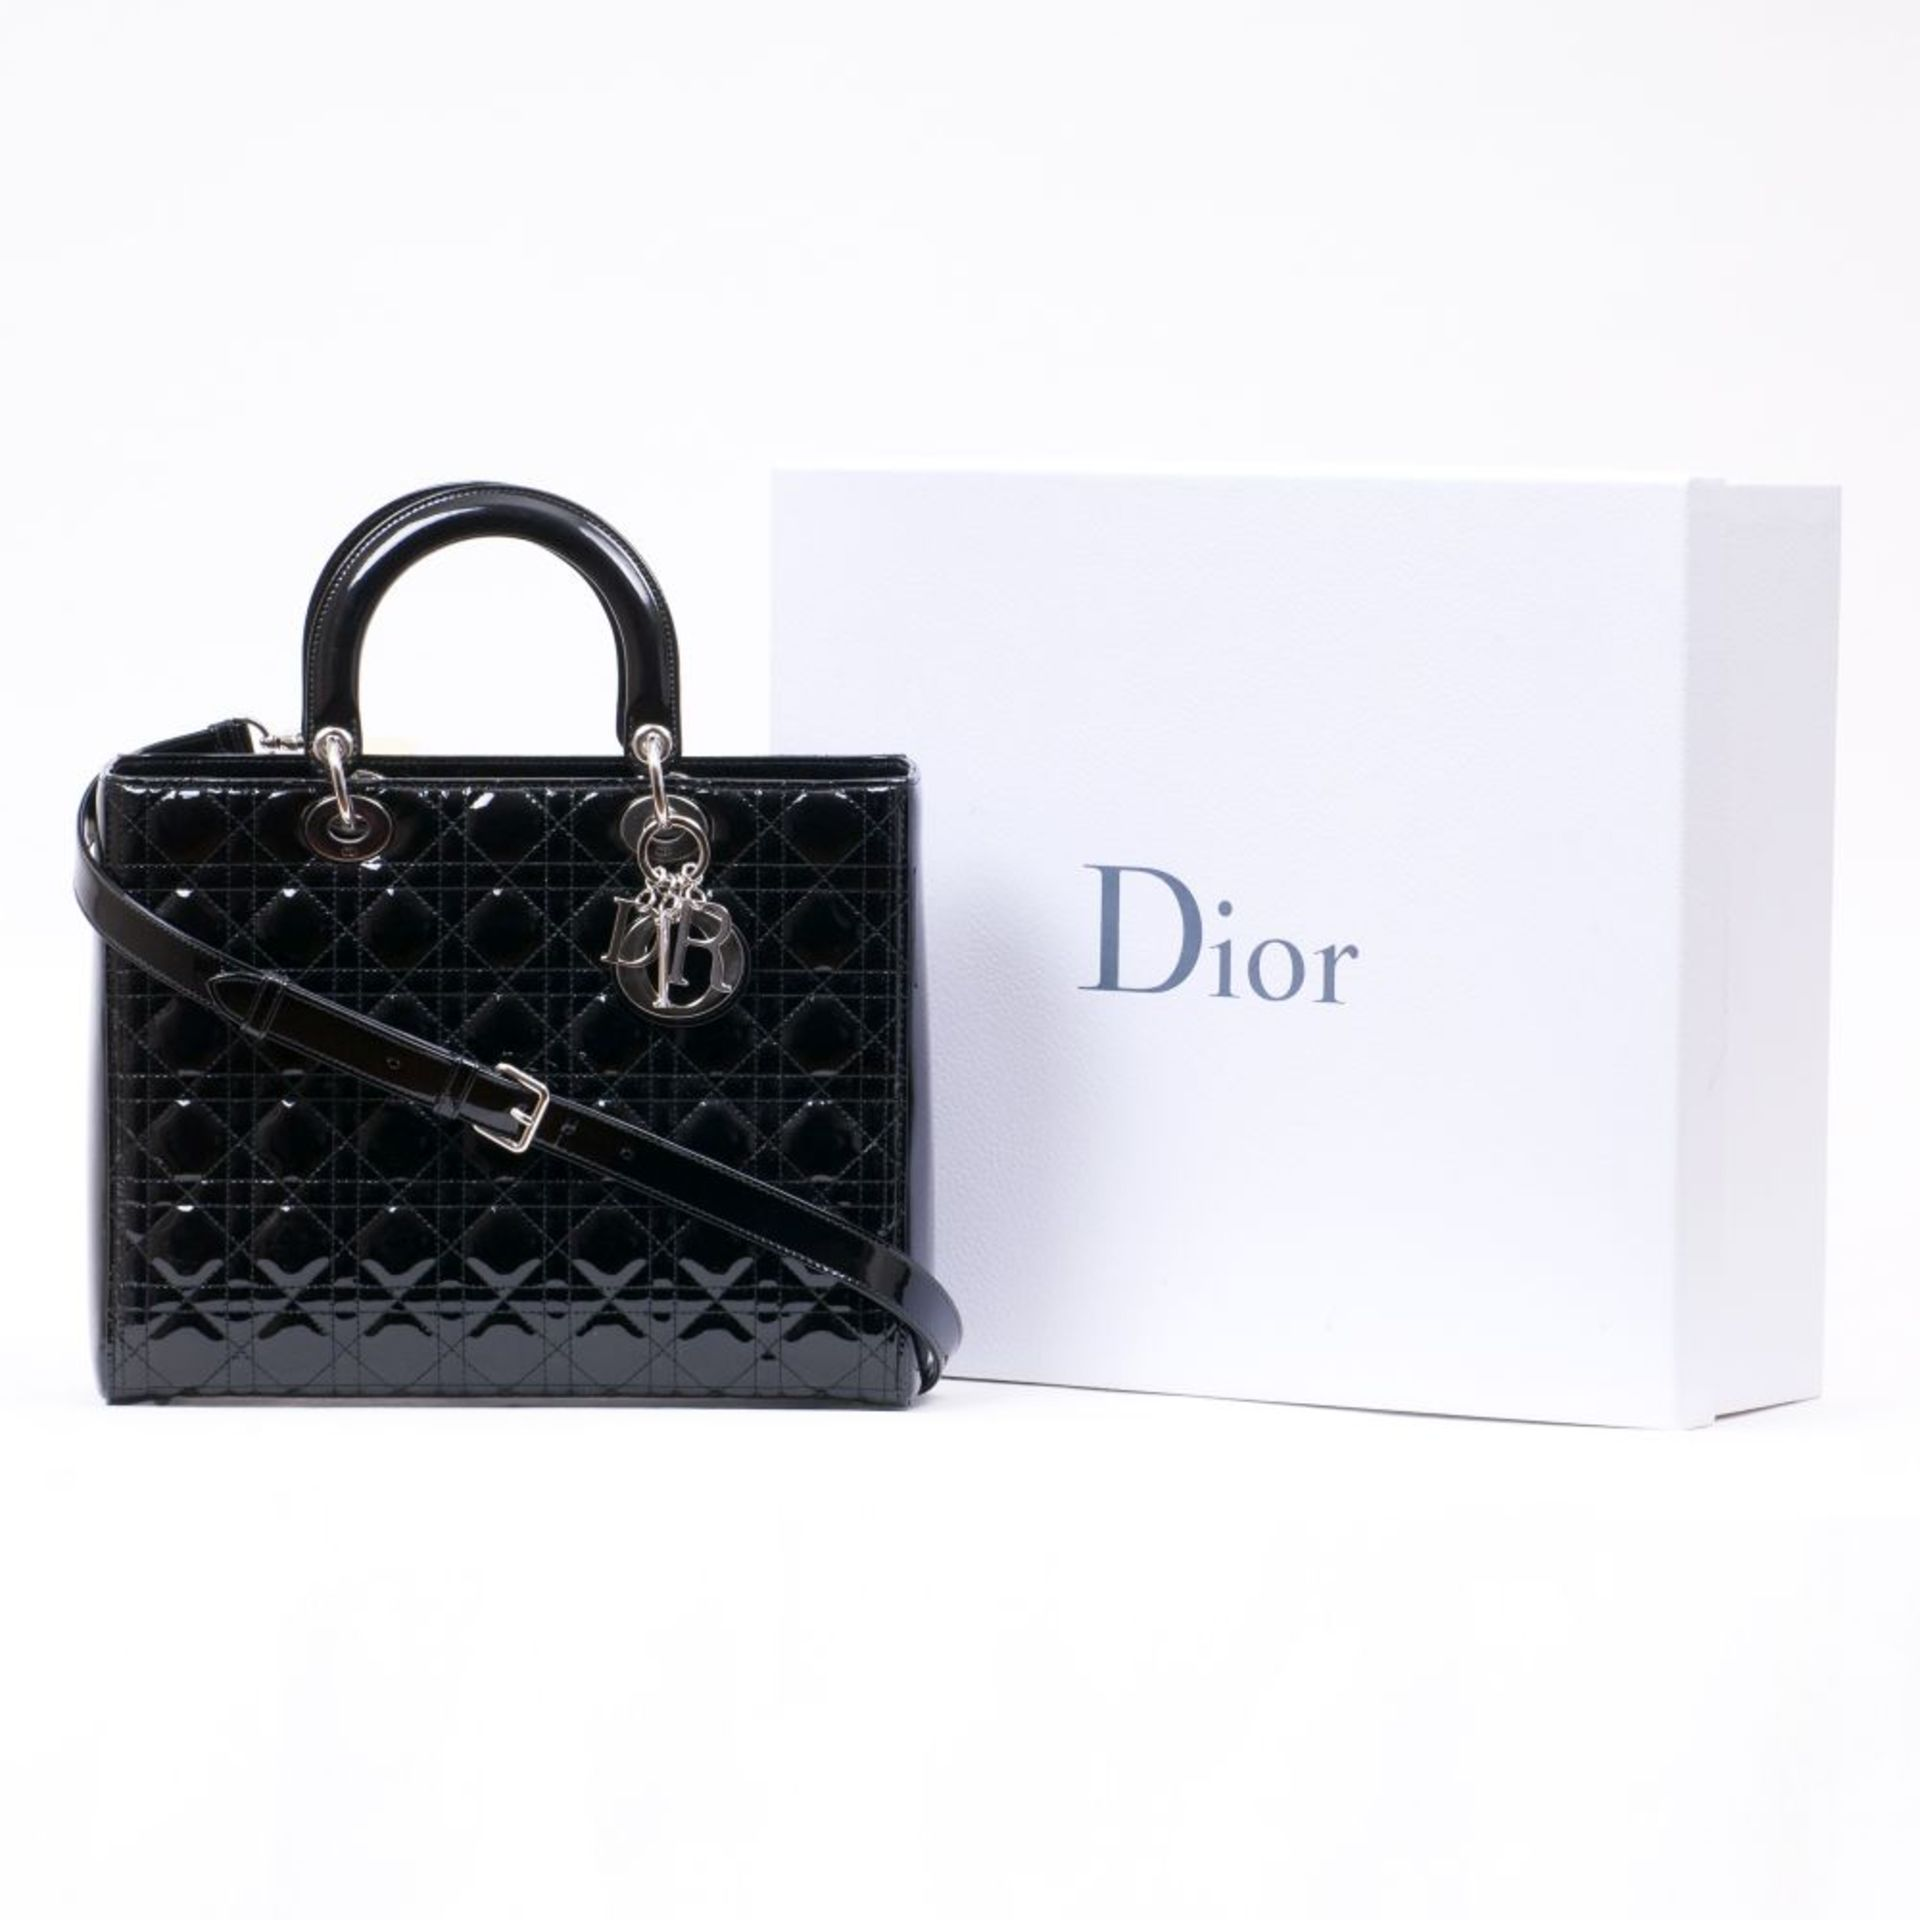 Christian Dior. Lady Dior Bag Black. - Image 2 of 2